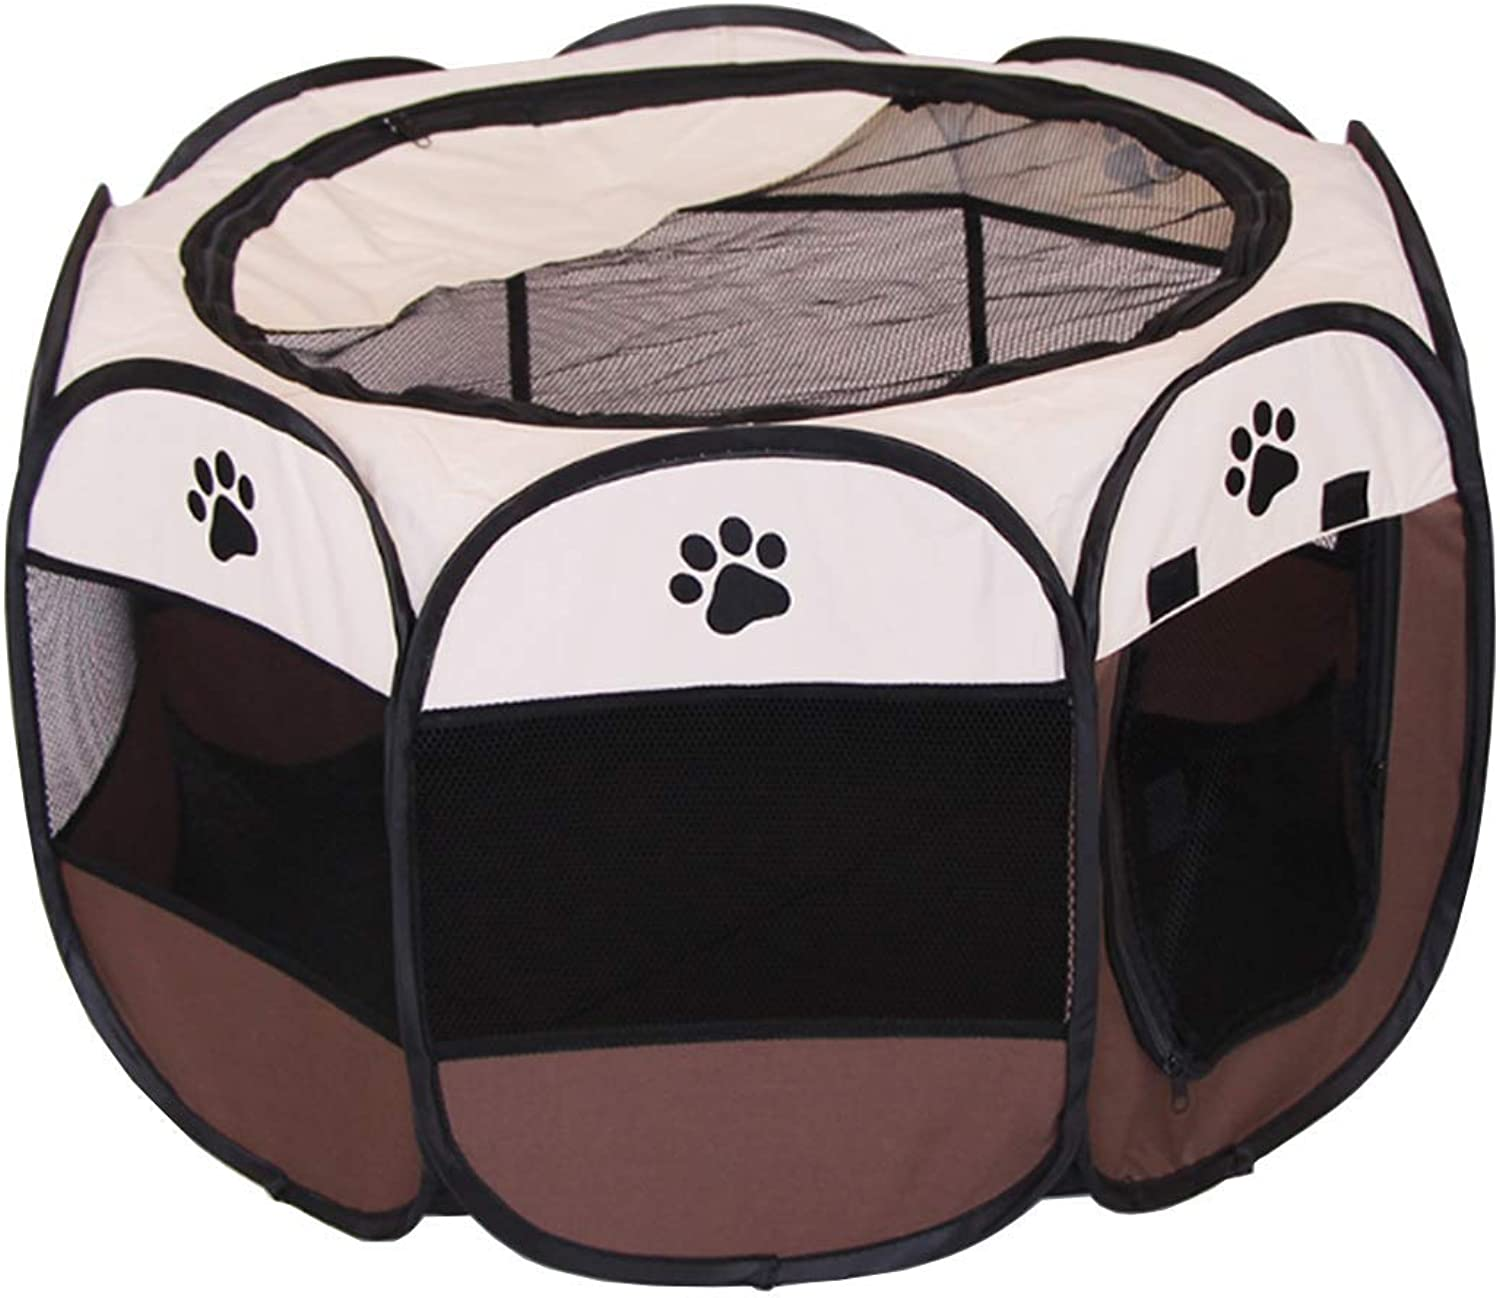 AIYUN Pet Cage for Cats and Dogs Pet Fence Folding Pet Kennel 600D Brown Oxford Cloth (L)